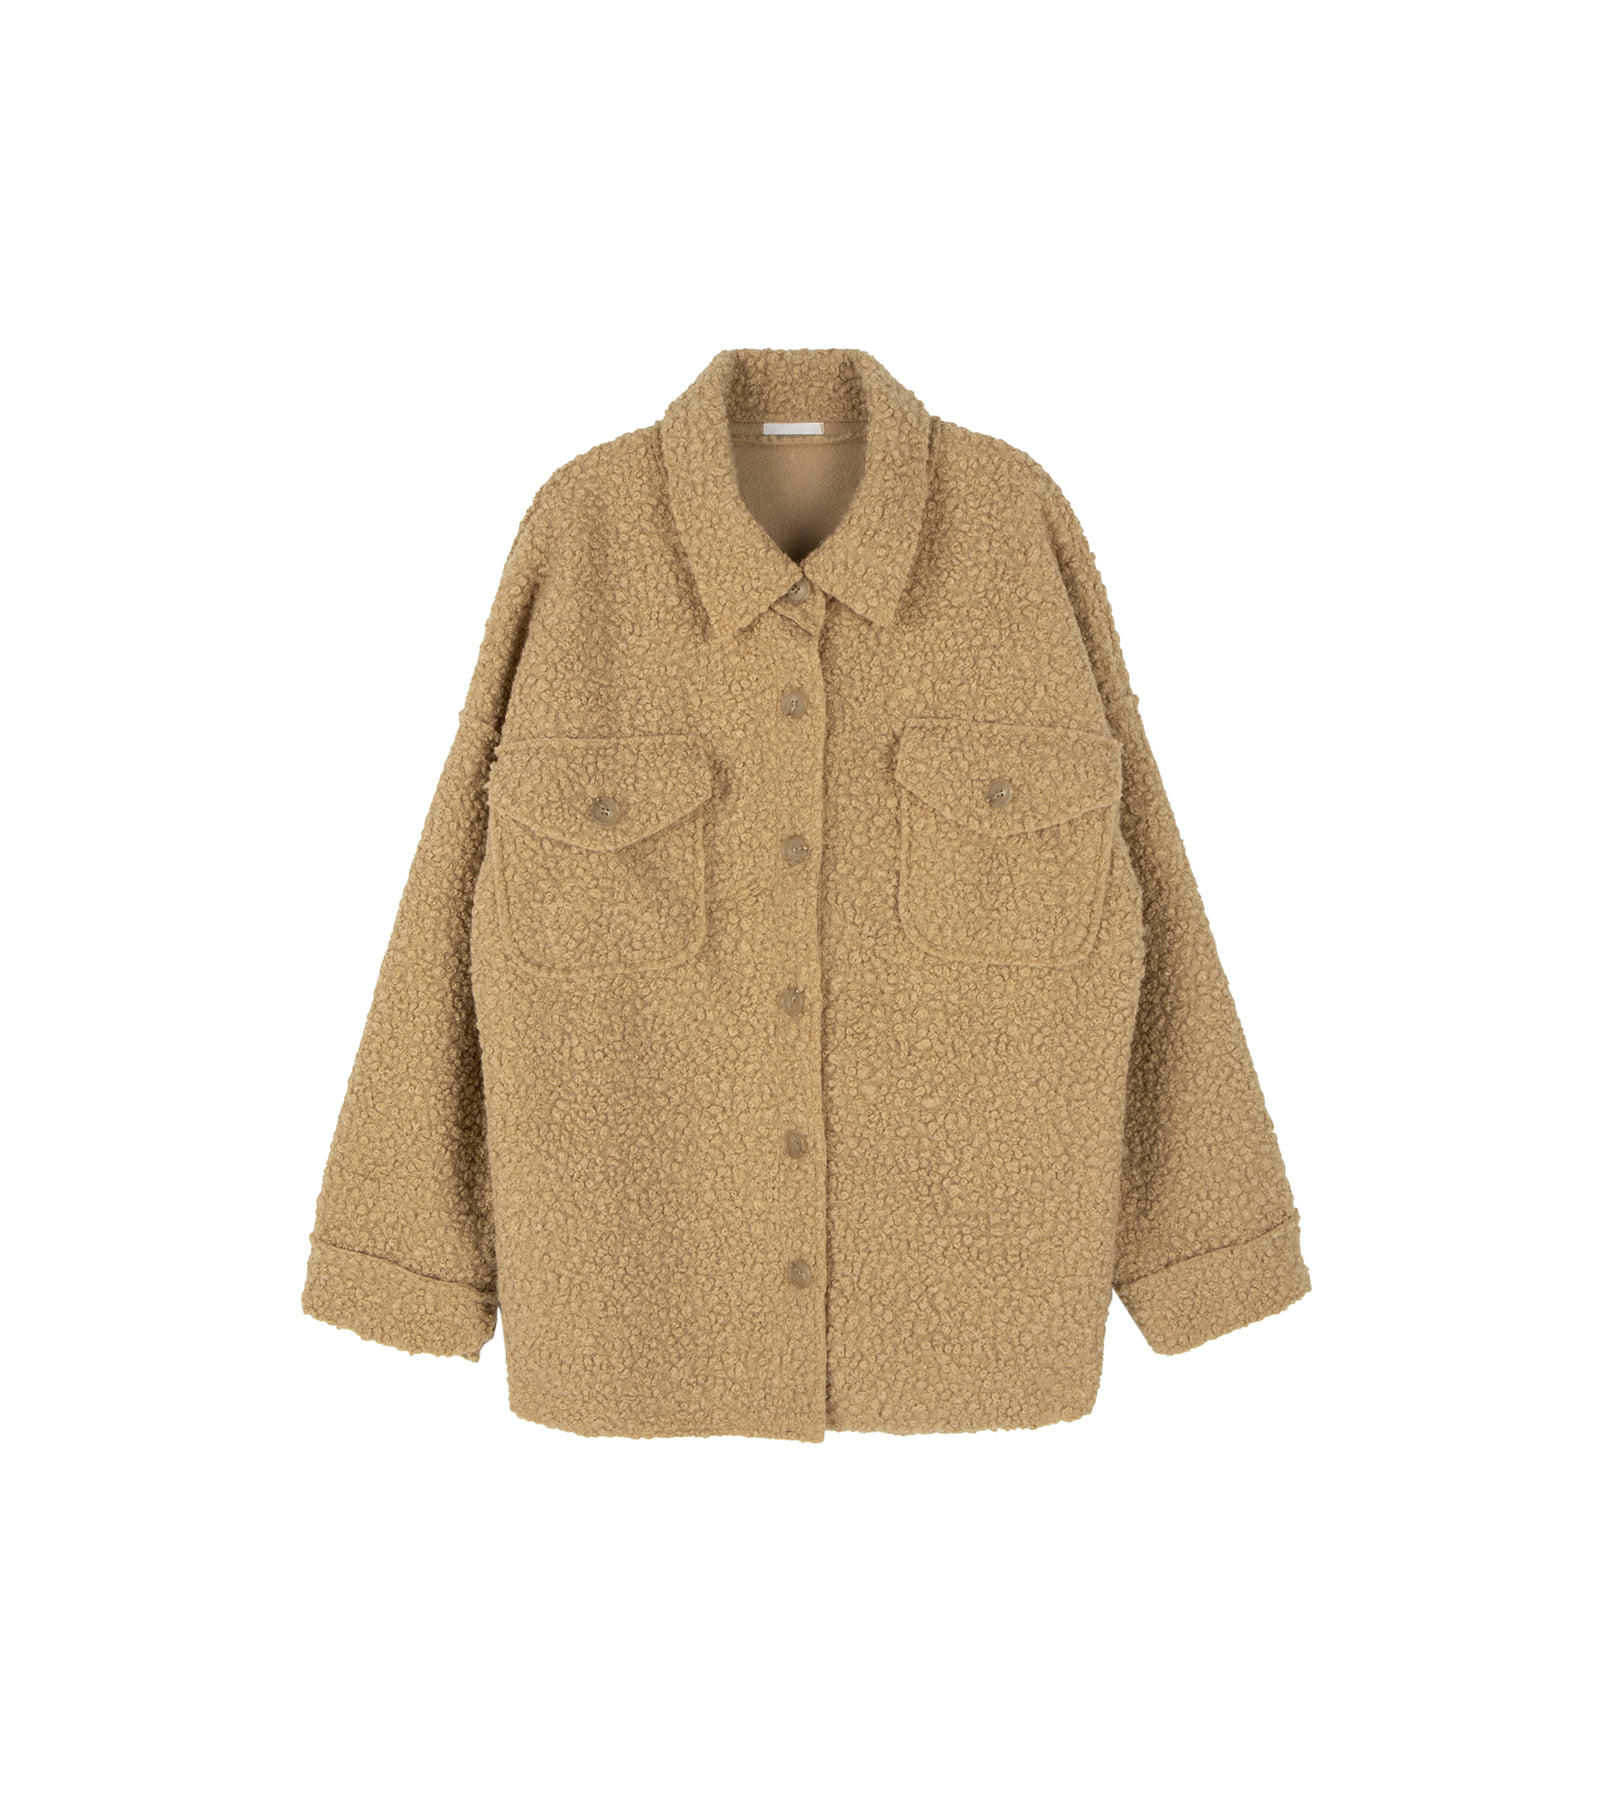 Amber button shearling jacket